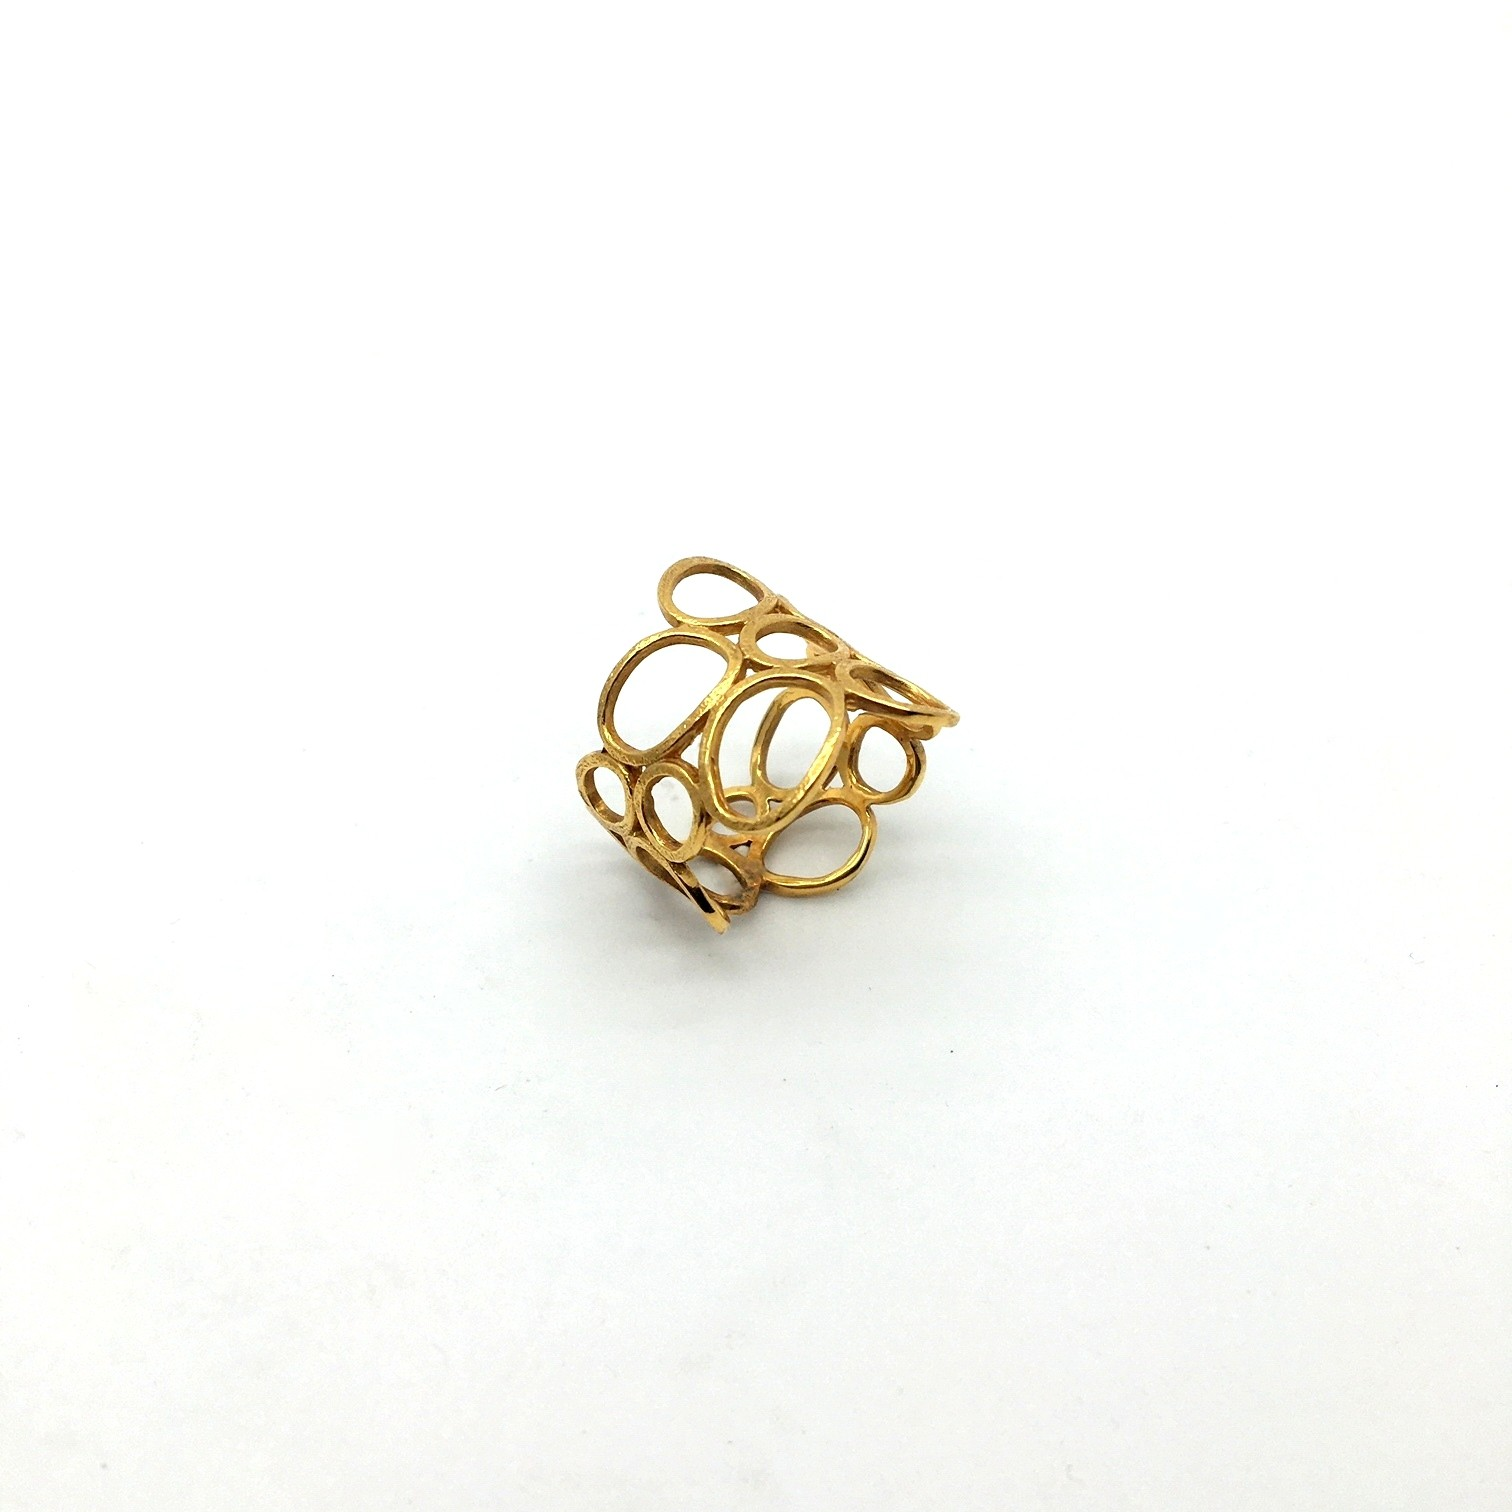 Gold ring 14K or 18K